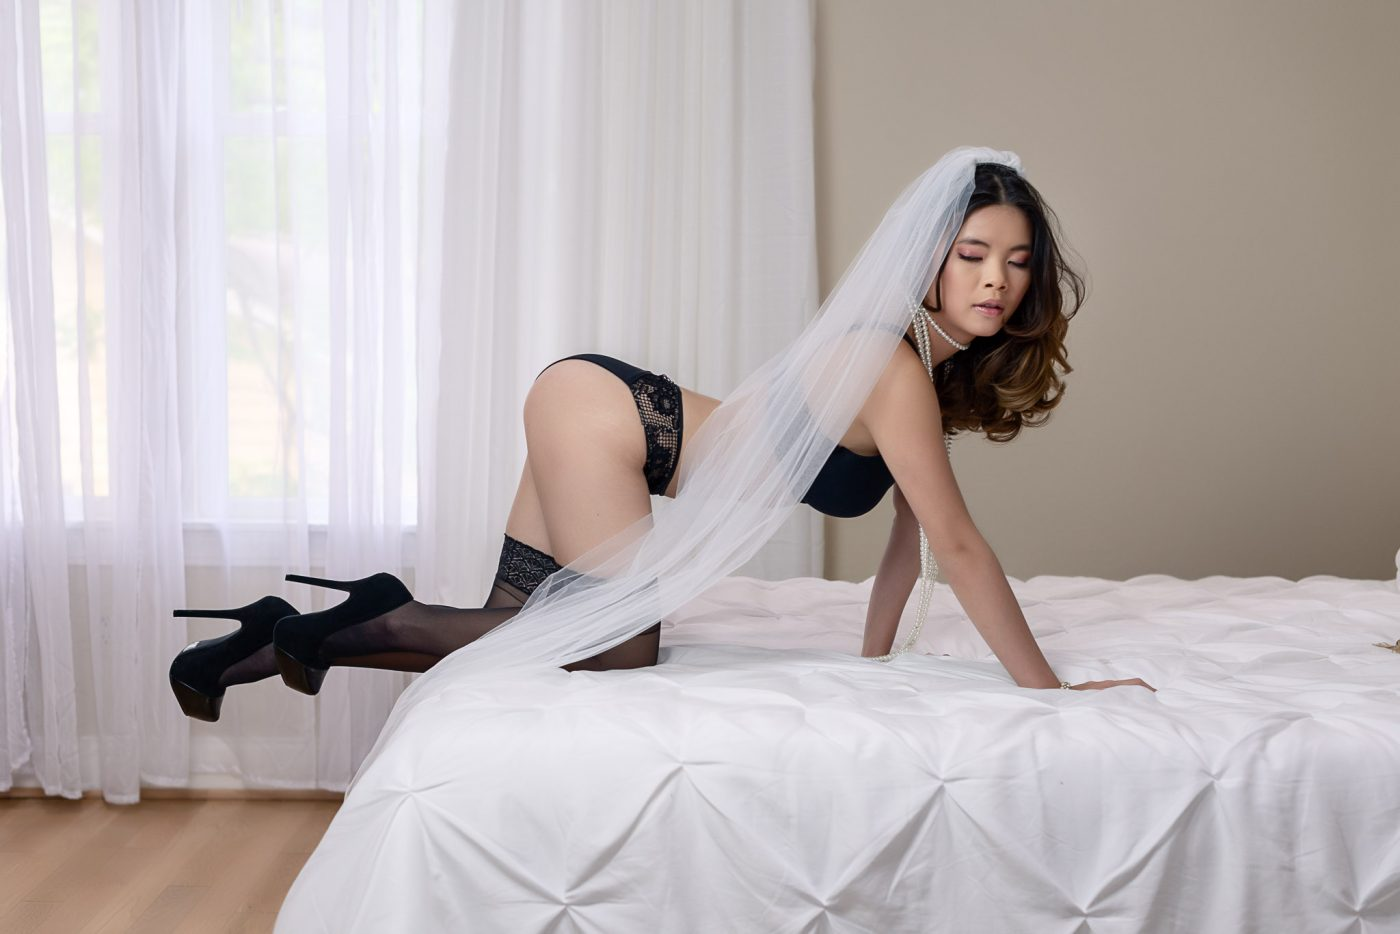 Sexy Bridal Boudoir Images and lingerie ideas that work!